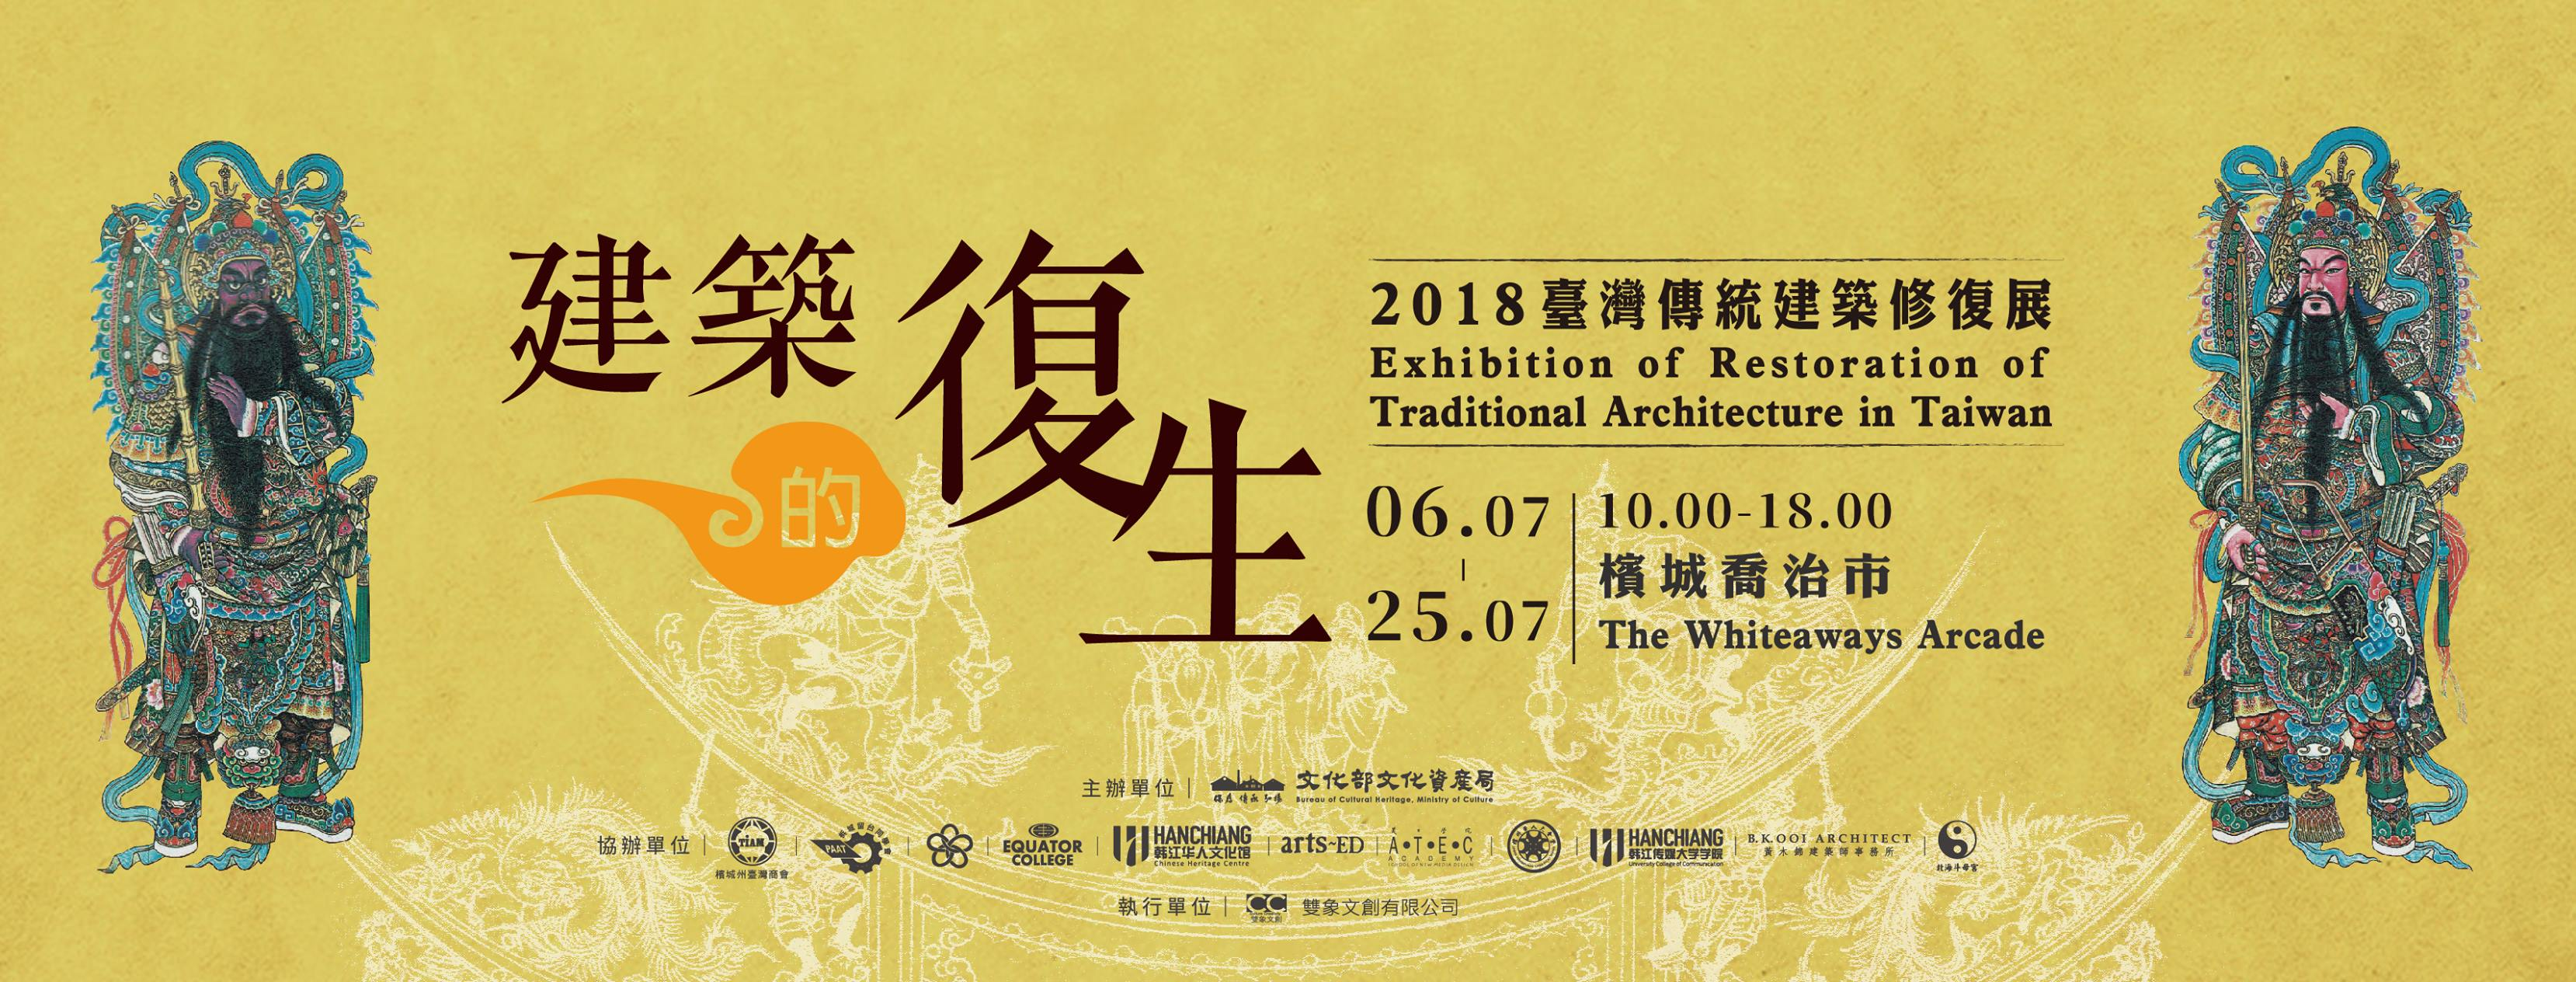 Exhibition of Restoration of Traditional Architecture in Taiwan[另開新視窗]